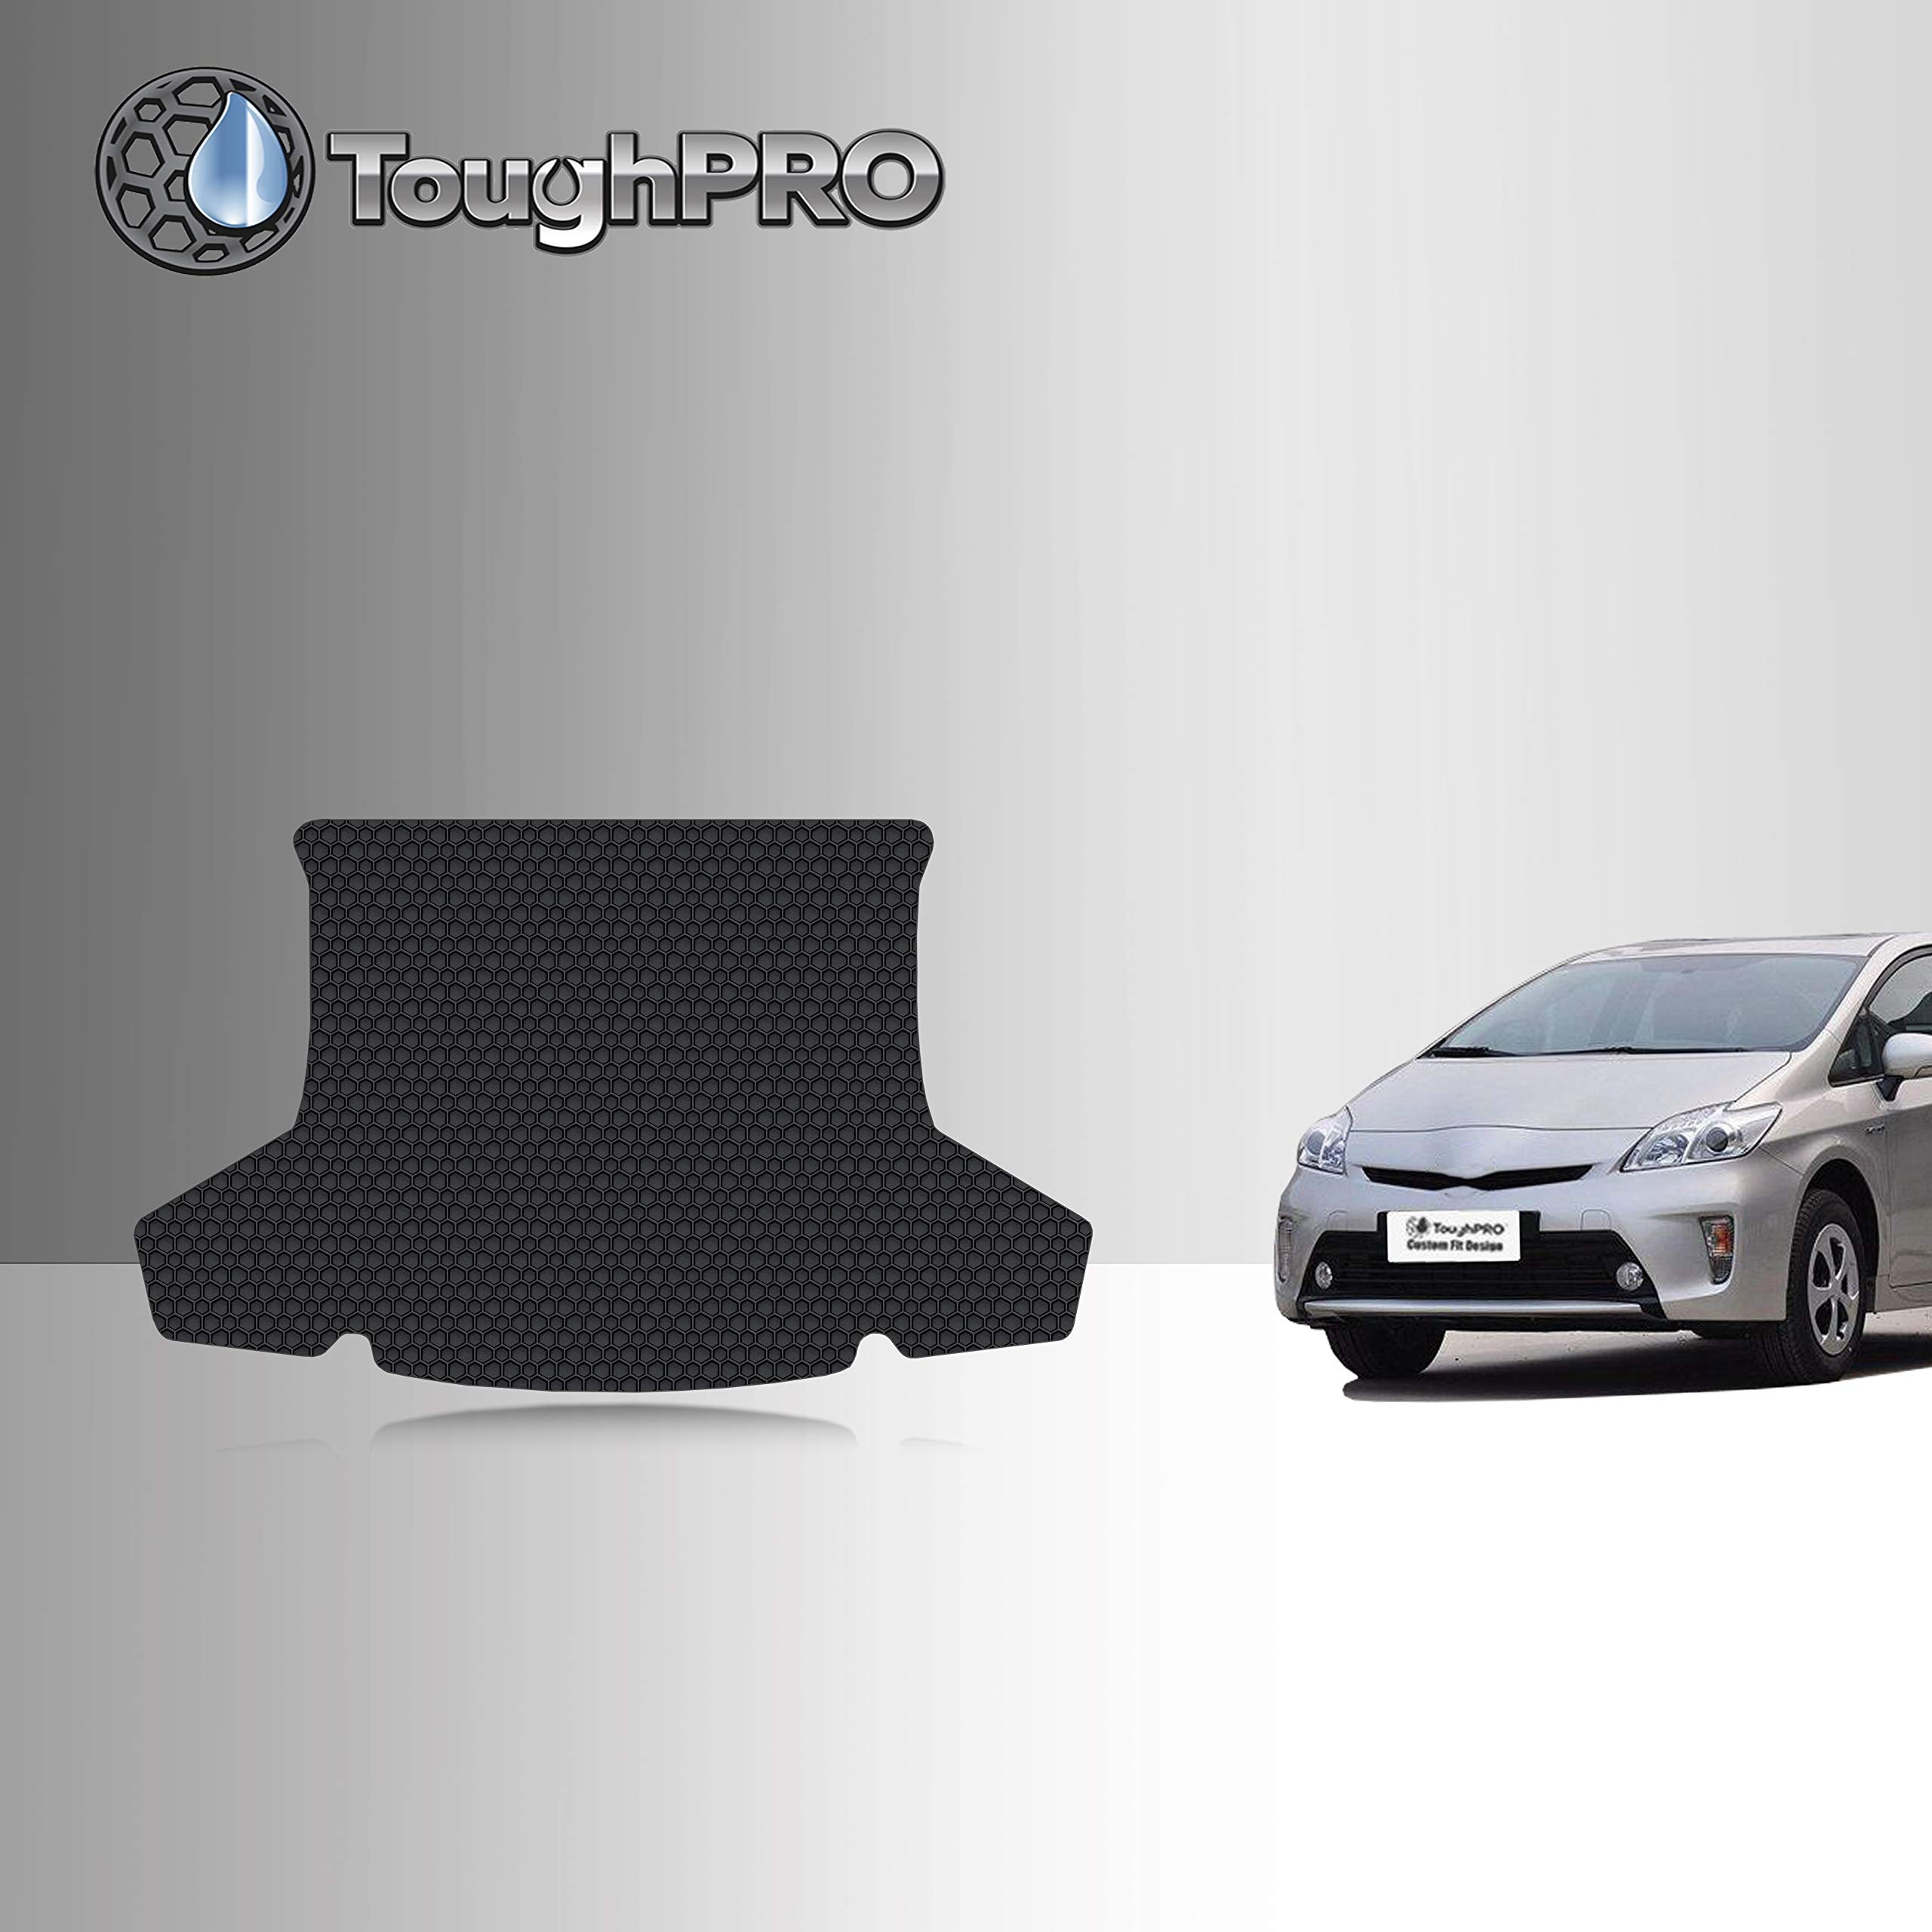 TOUGHPRO Cargo/Trunk Mat Accessories Compatible with Toyota Prius - All Weather - Heavy Duty - (Made in USA) - Black Rubber - 2010, 2011, 2012, 2013, 2014, 2015